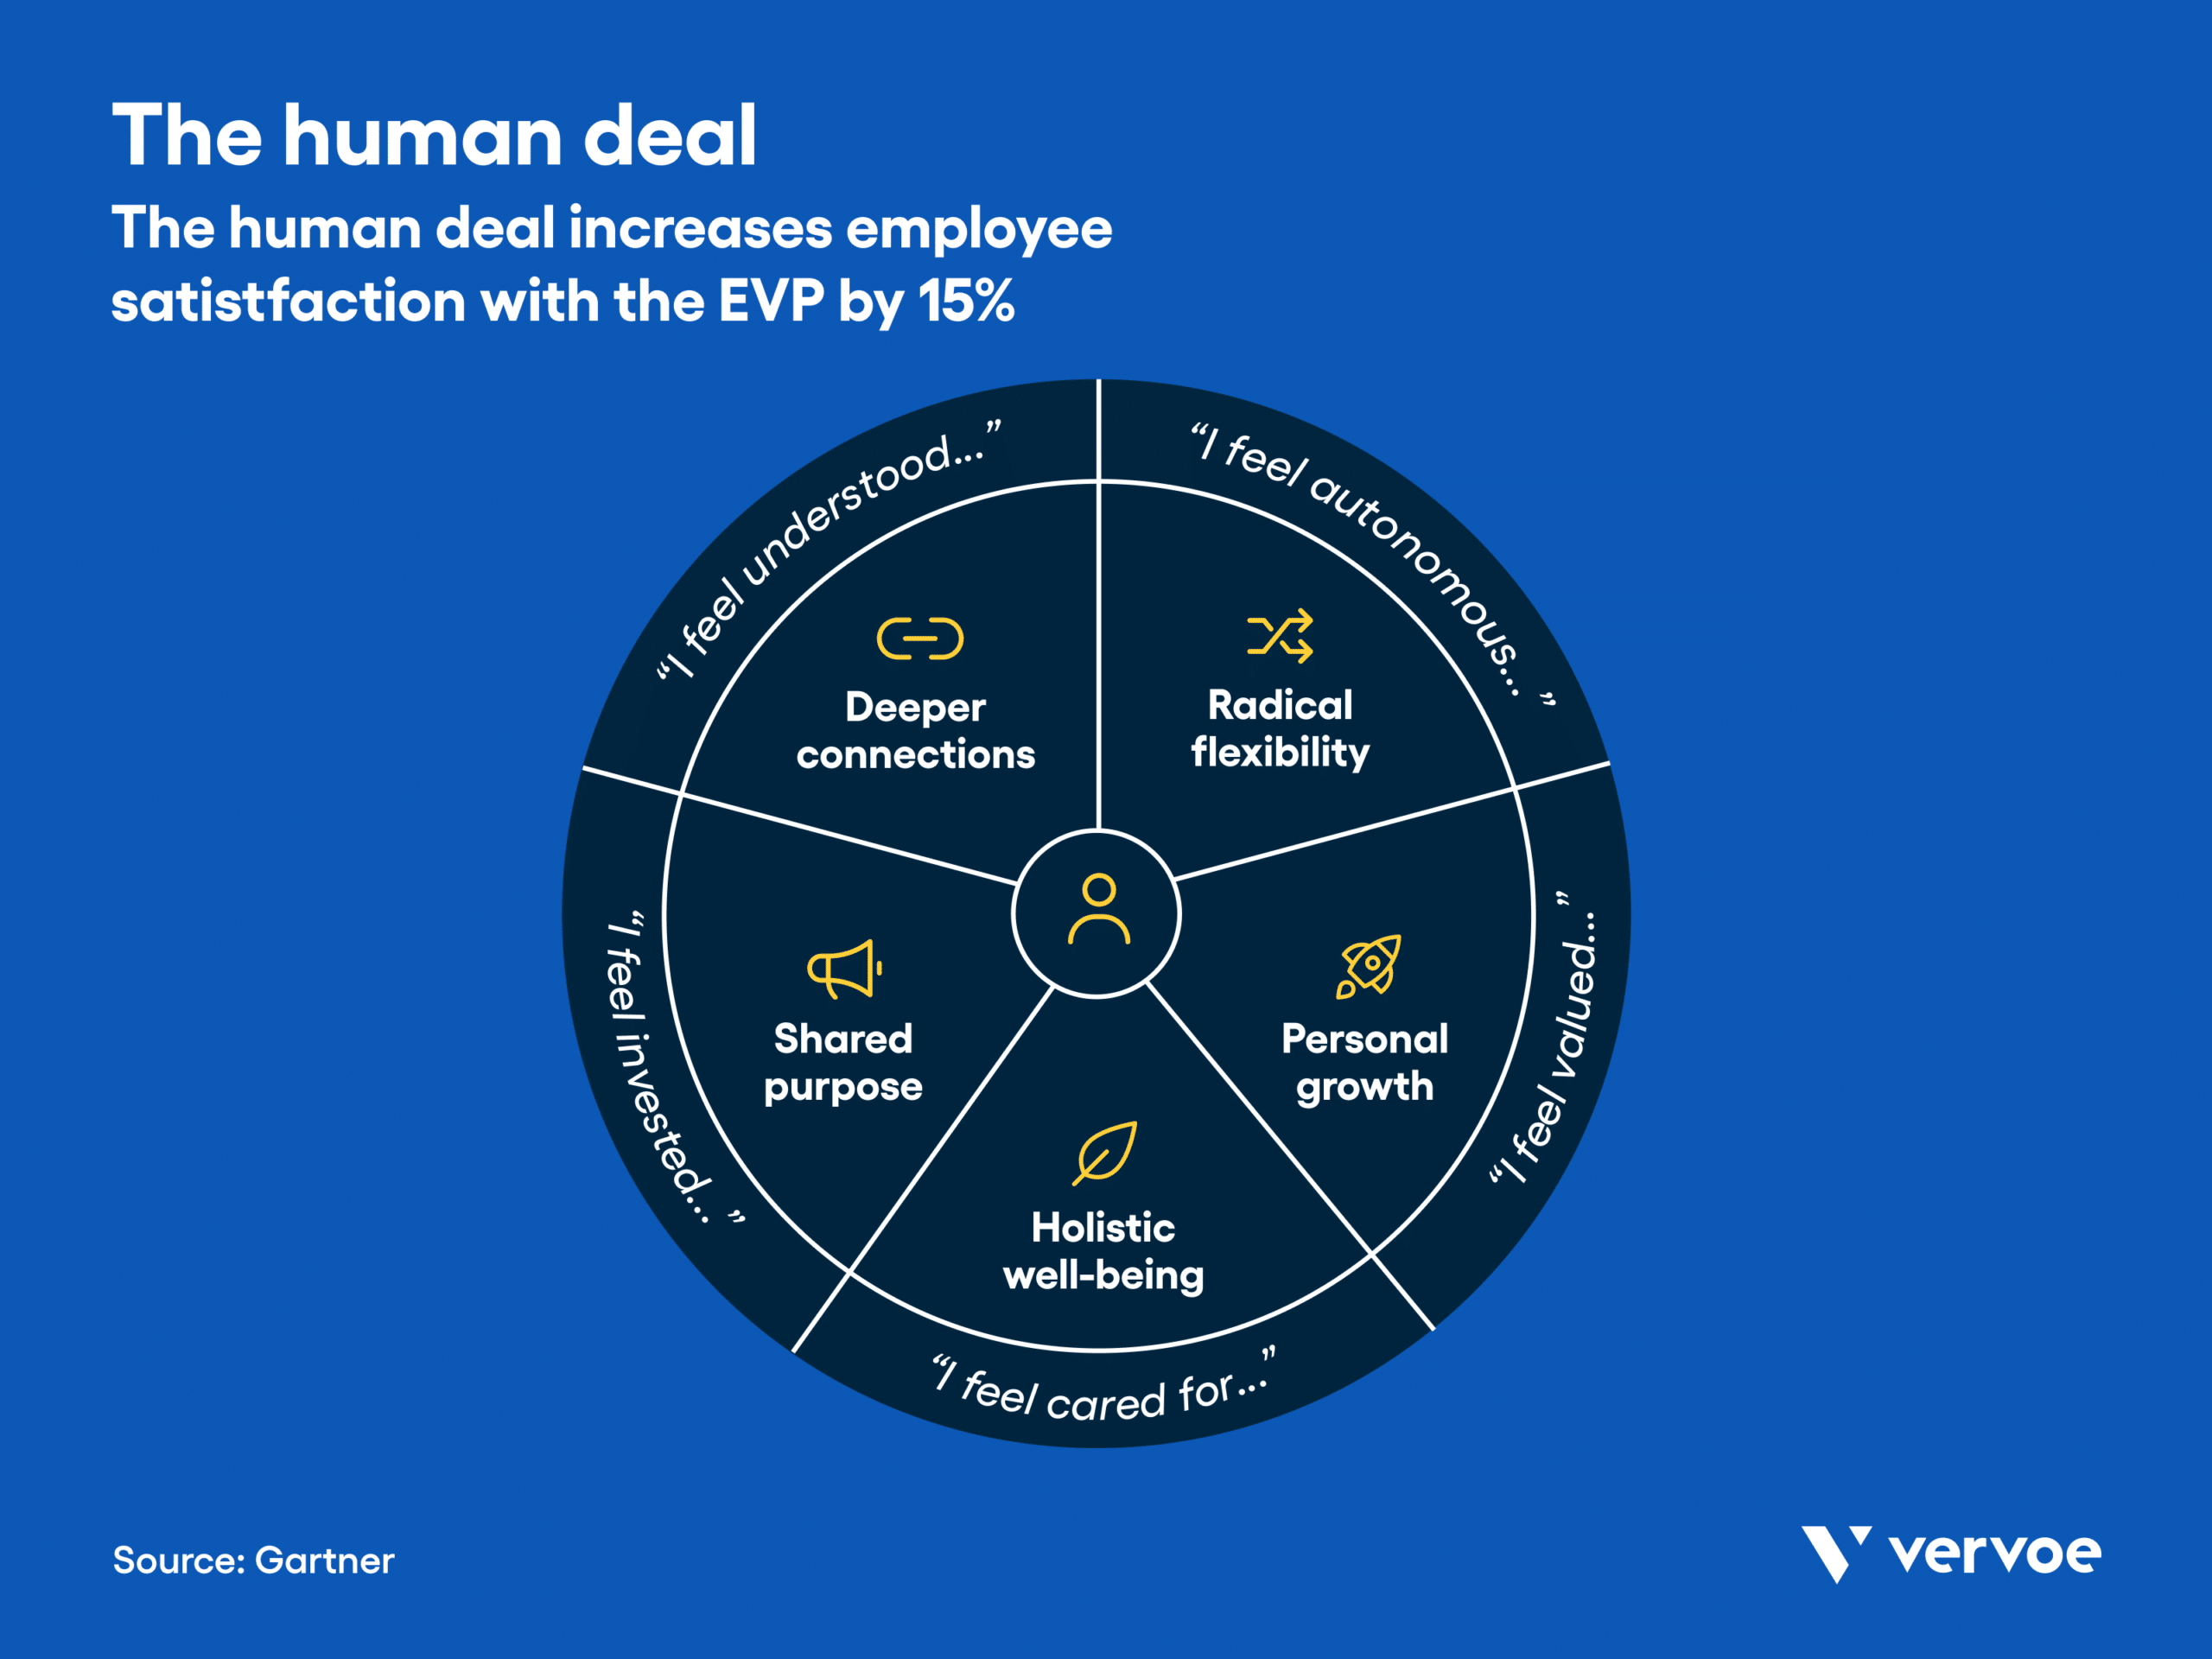 Infographic showing how the human deal increases employee satisfaction with the evp by 15%